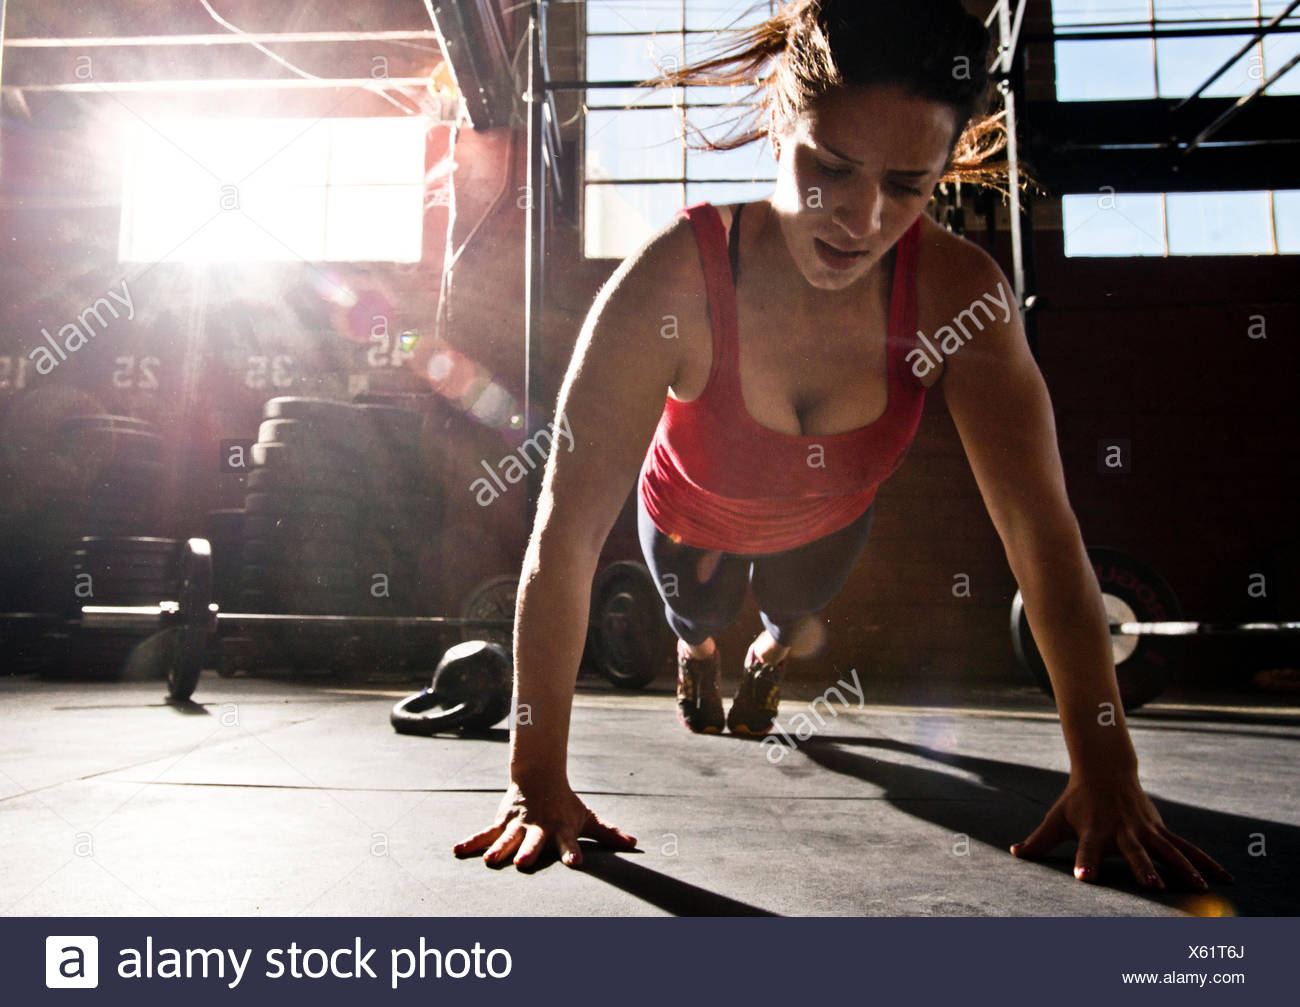 Un athlète crossfit exécute un push-up. Photo Stock